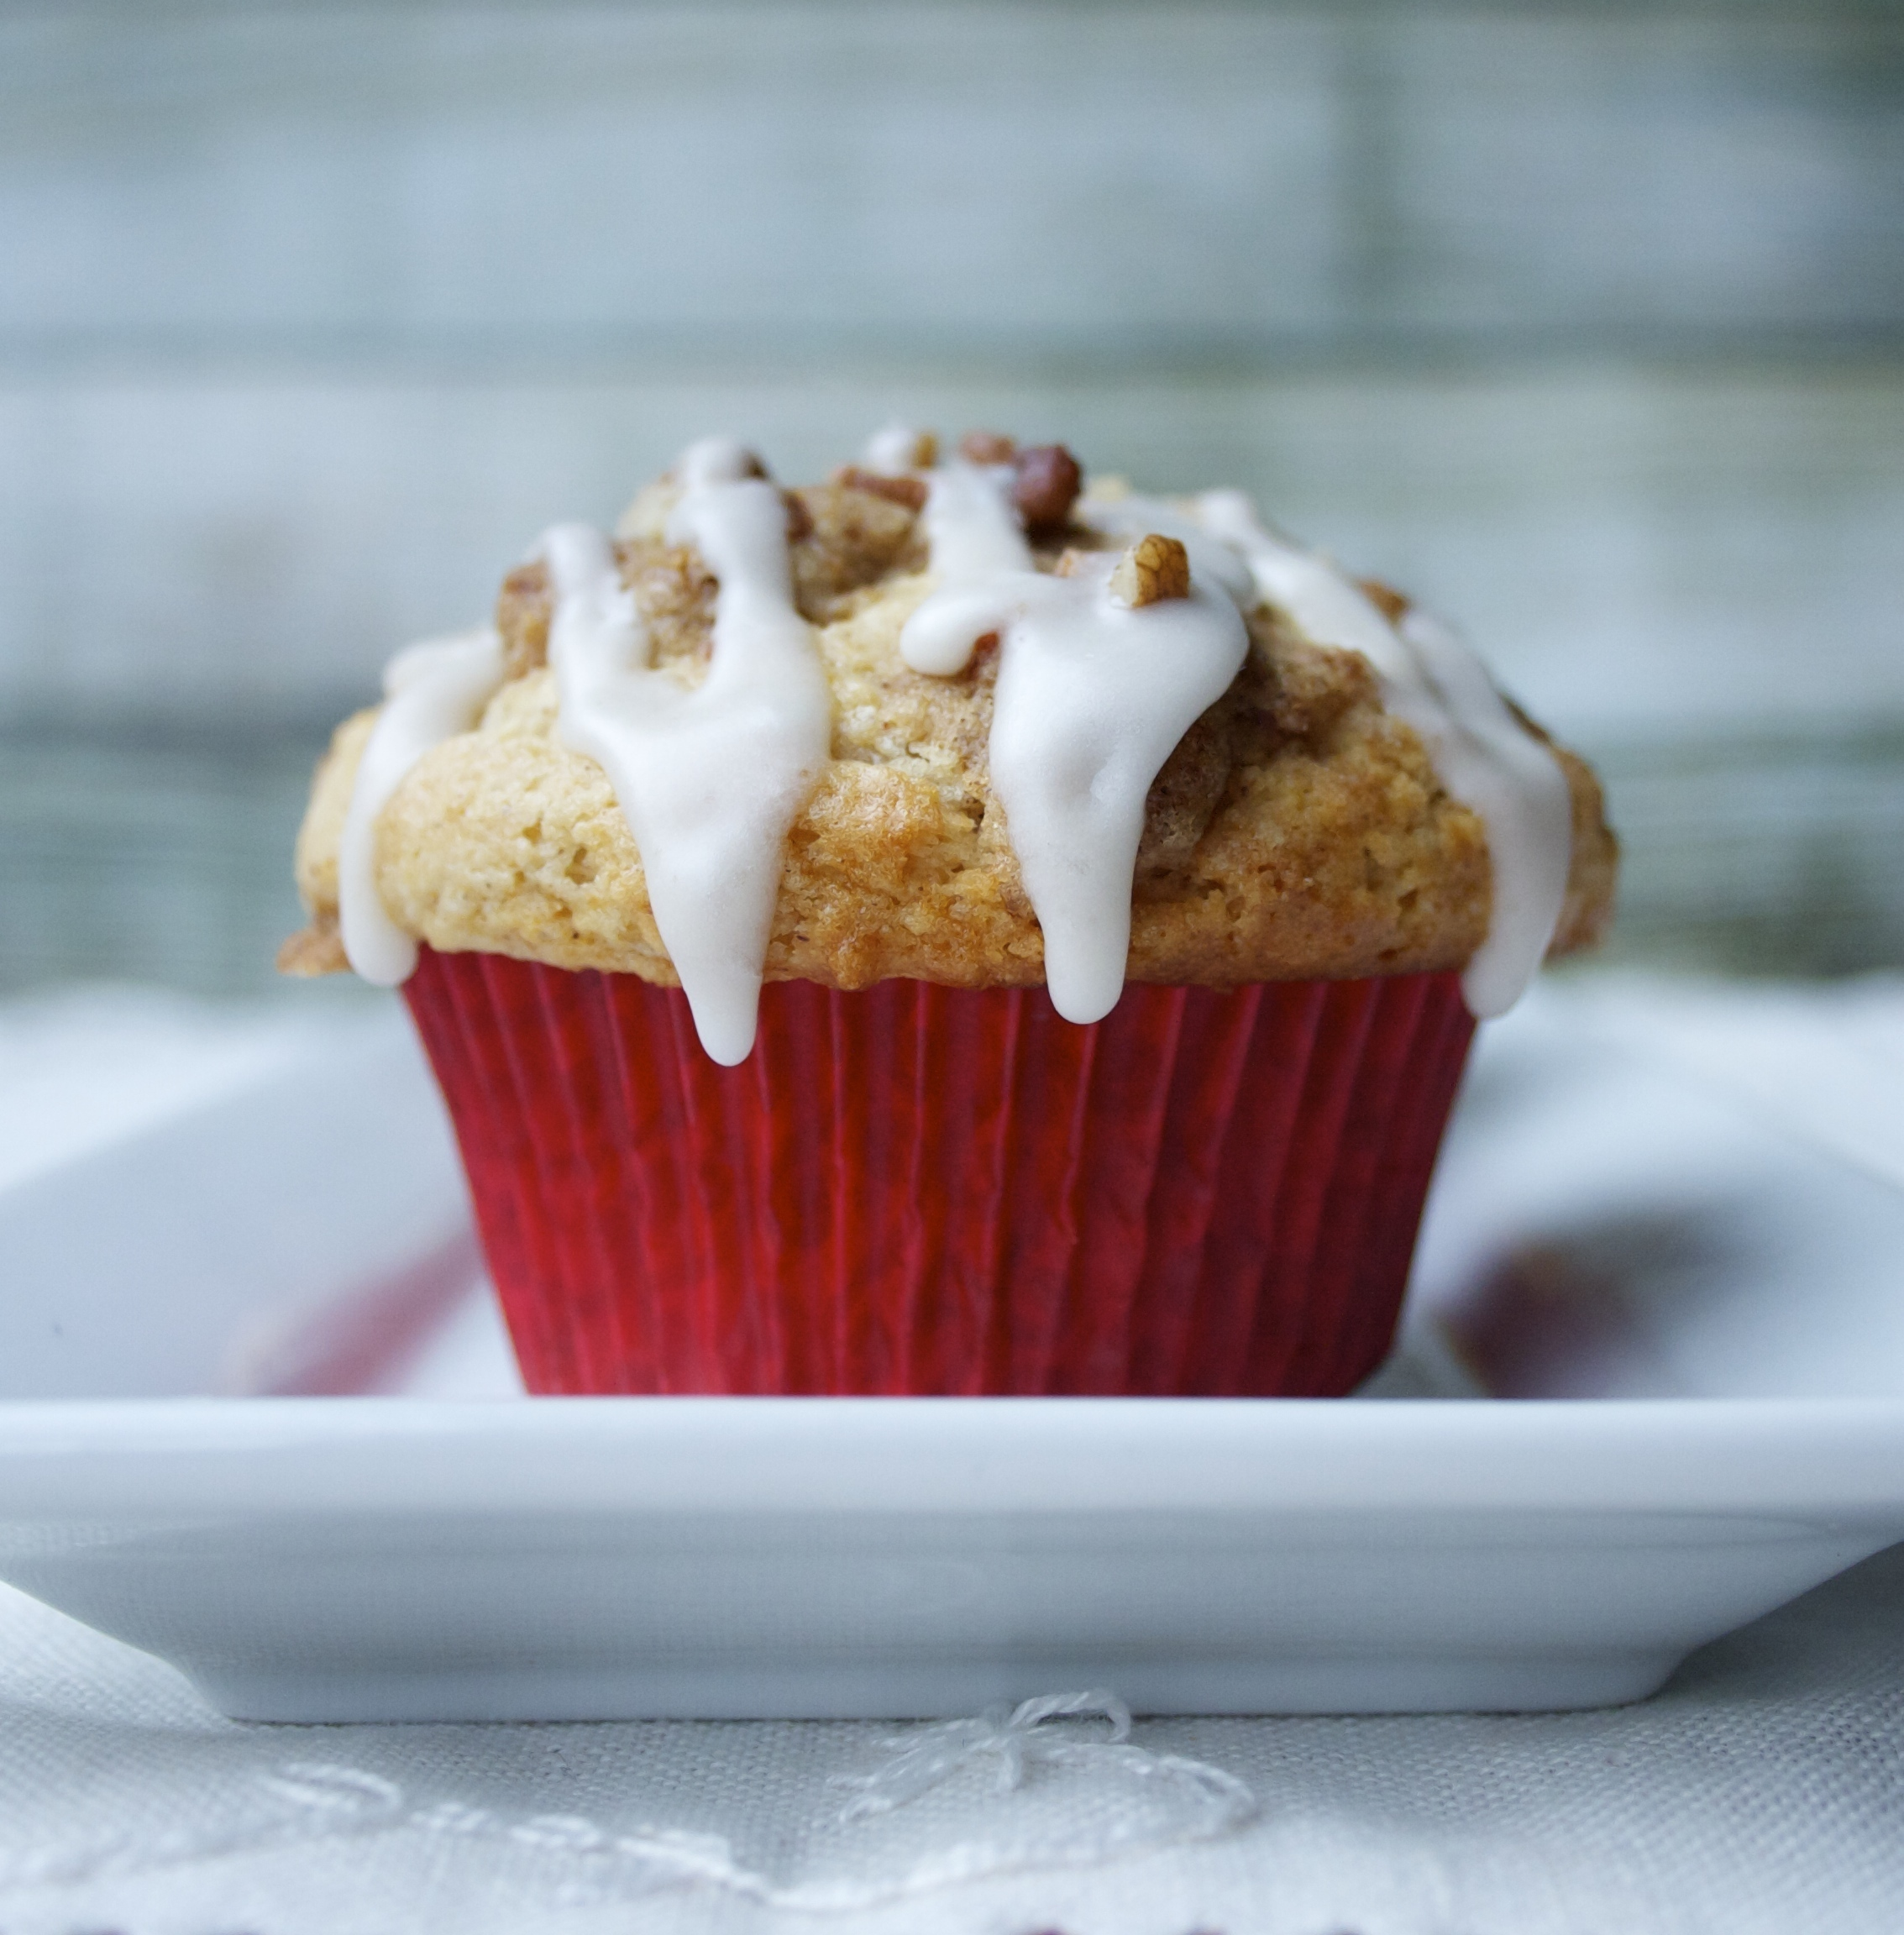 Maple Bacon Streusel Muffins with Maple Bourbon Glaze